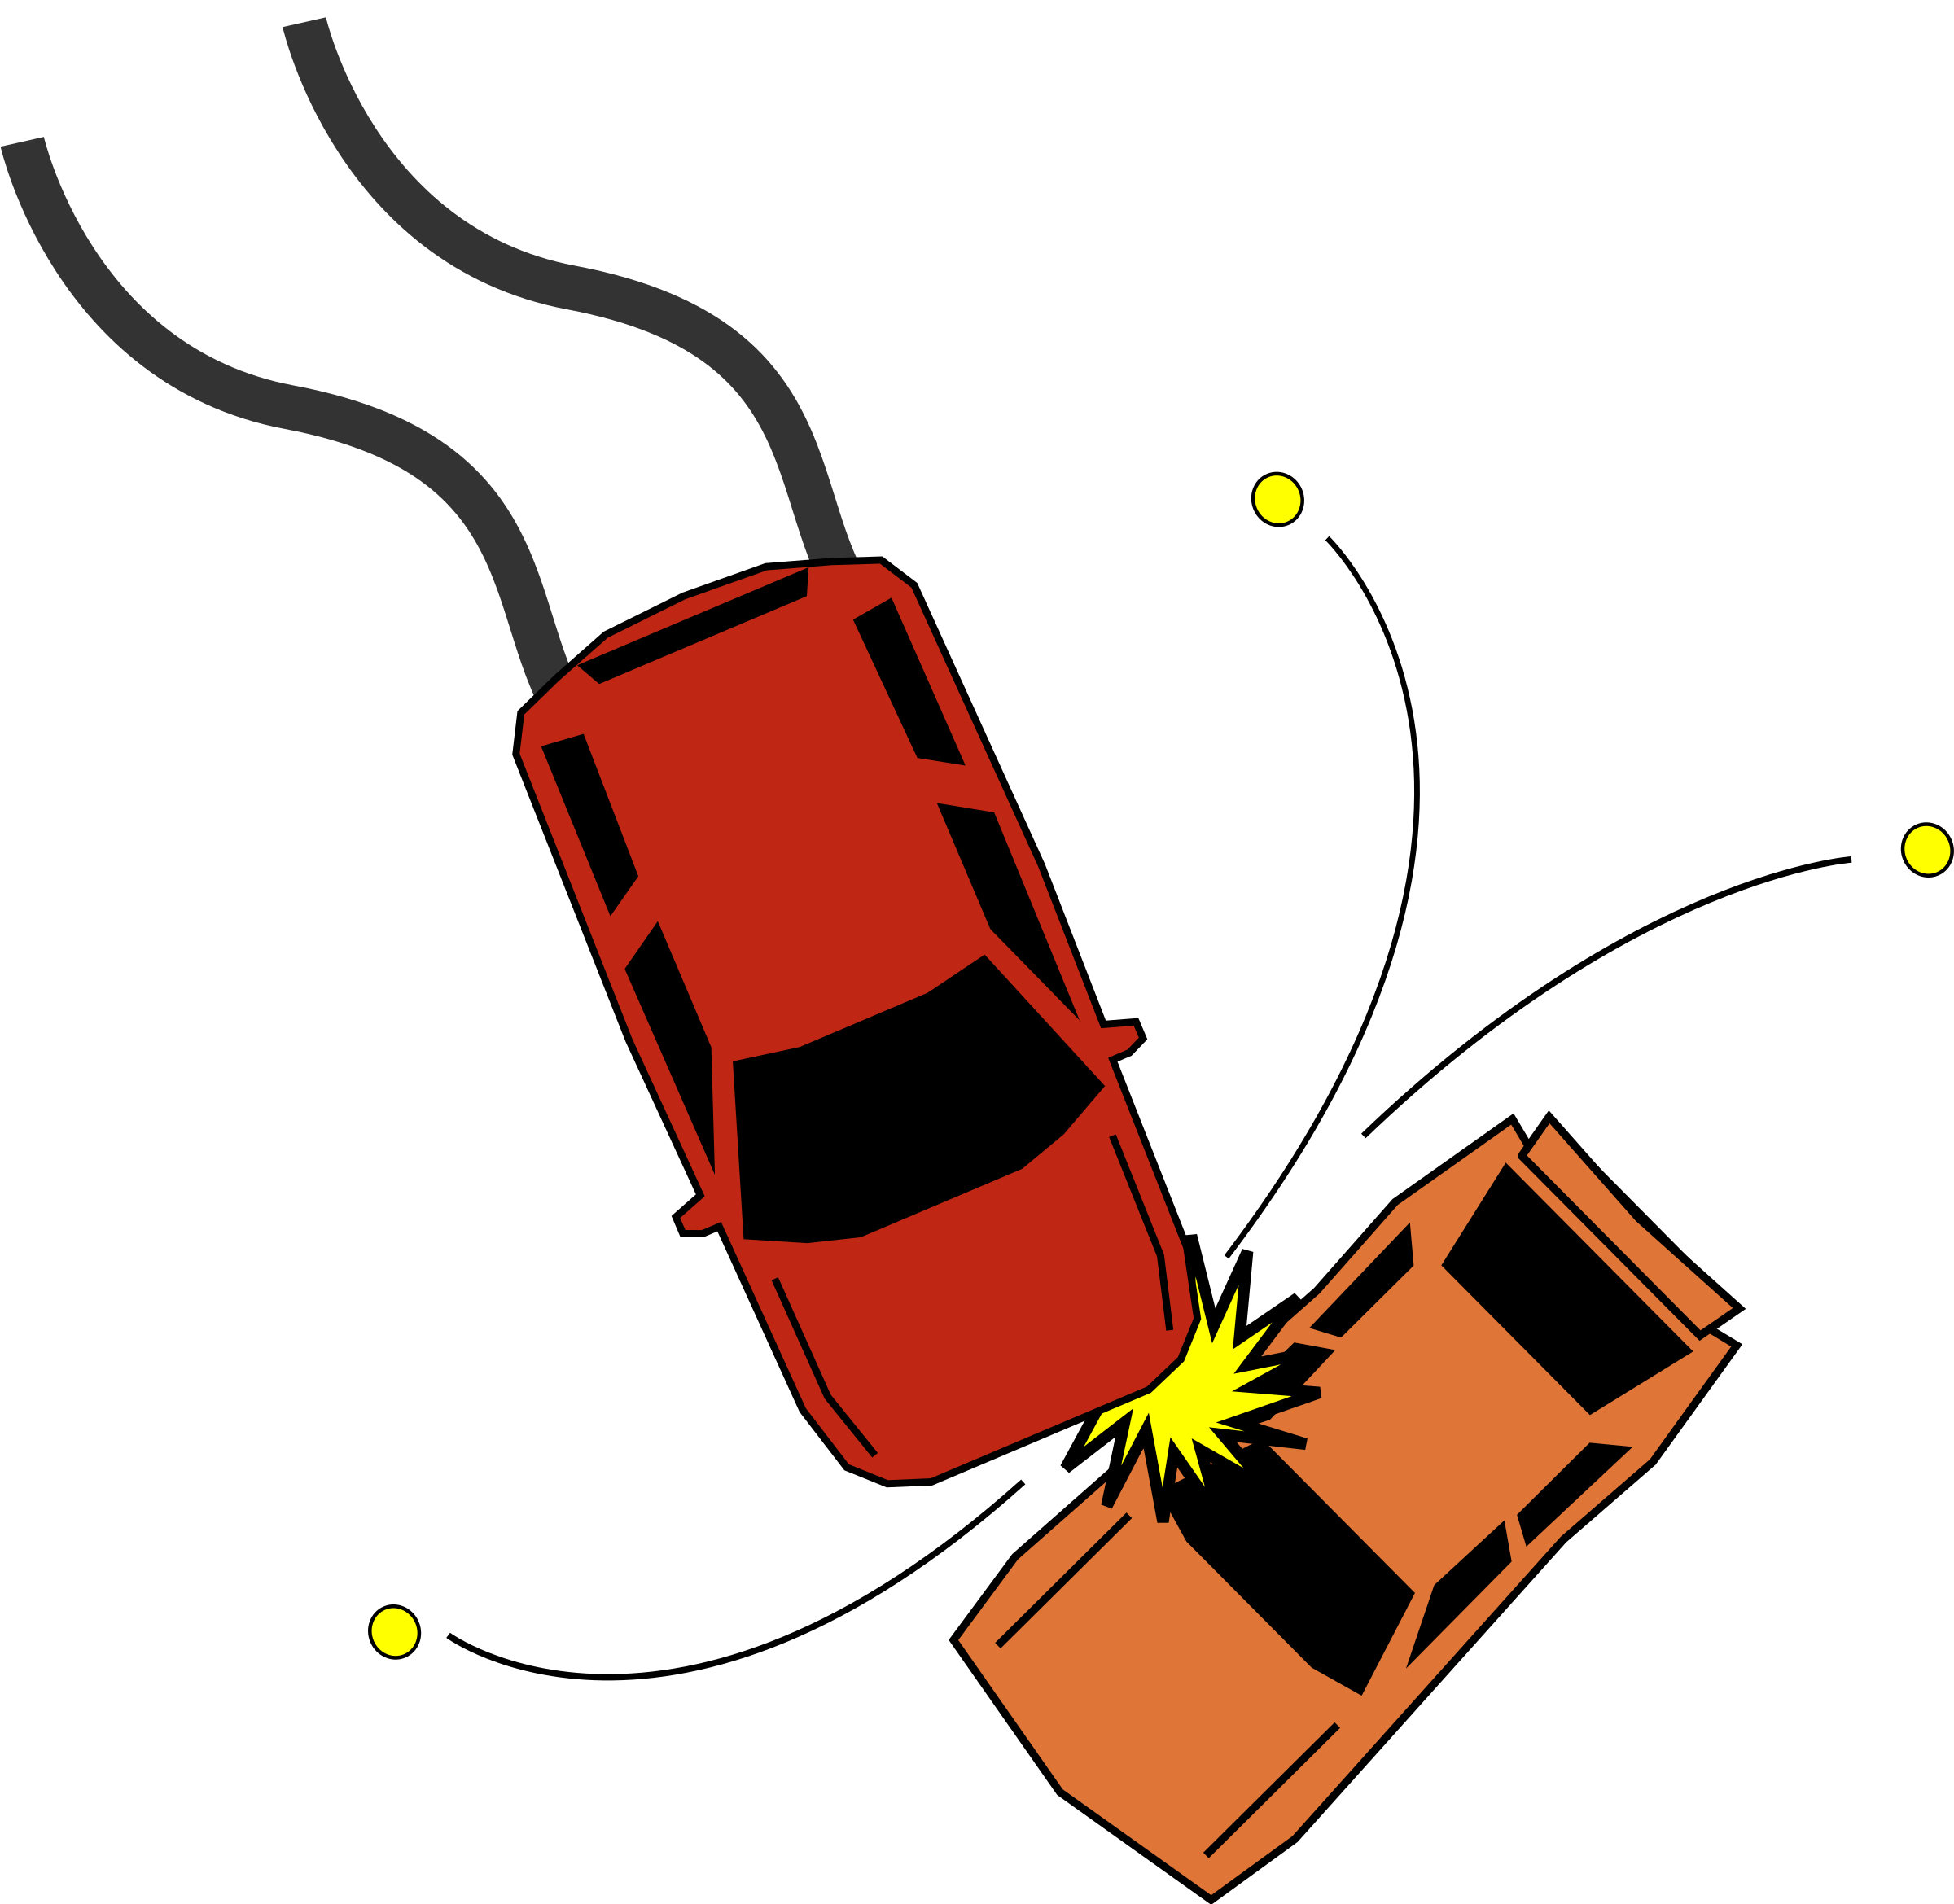 Wreck clipart Car Clipart Clipart Accident Car